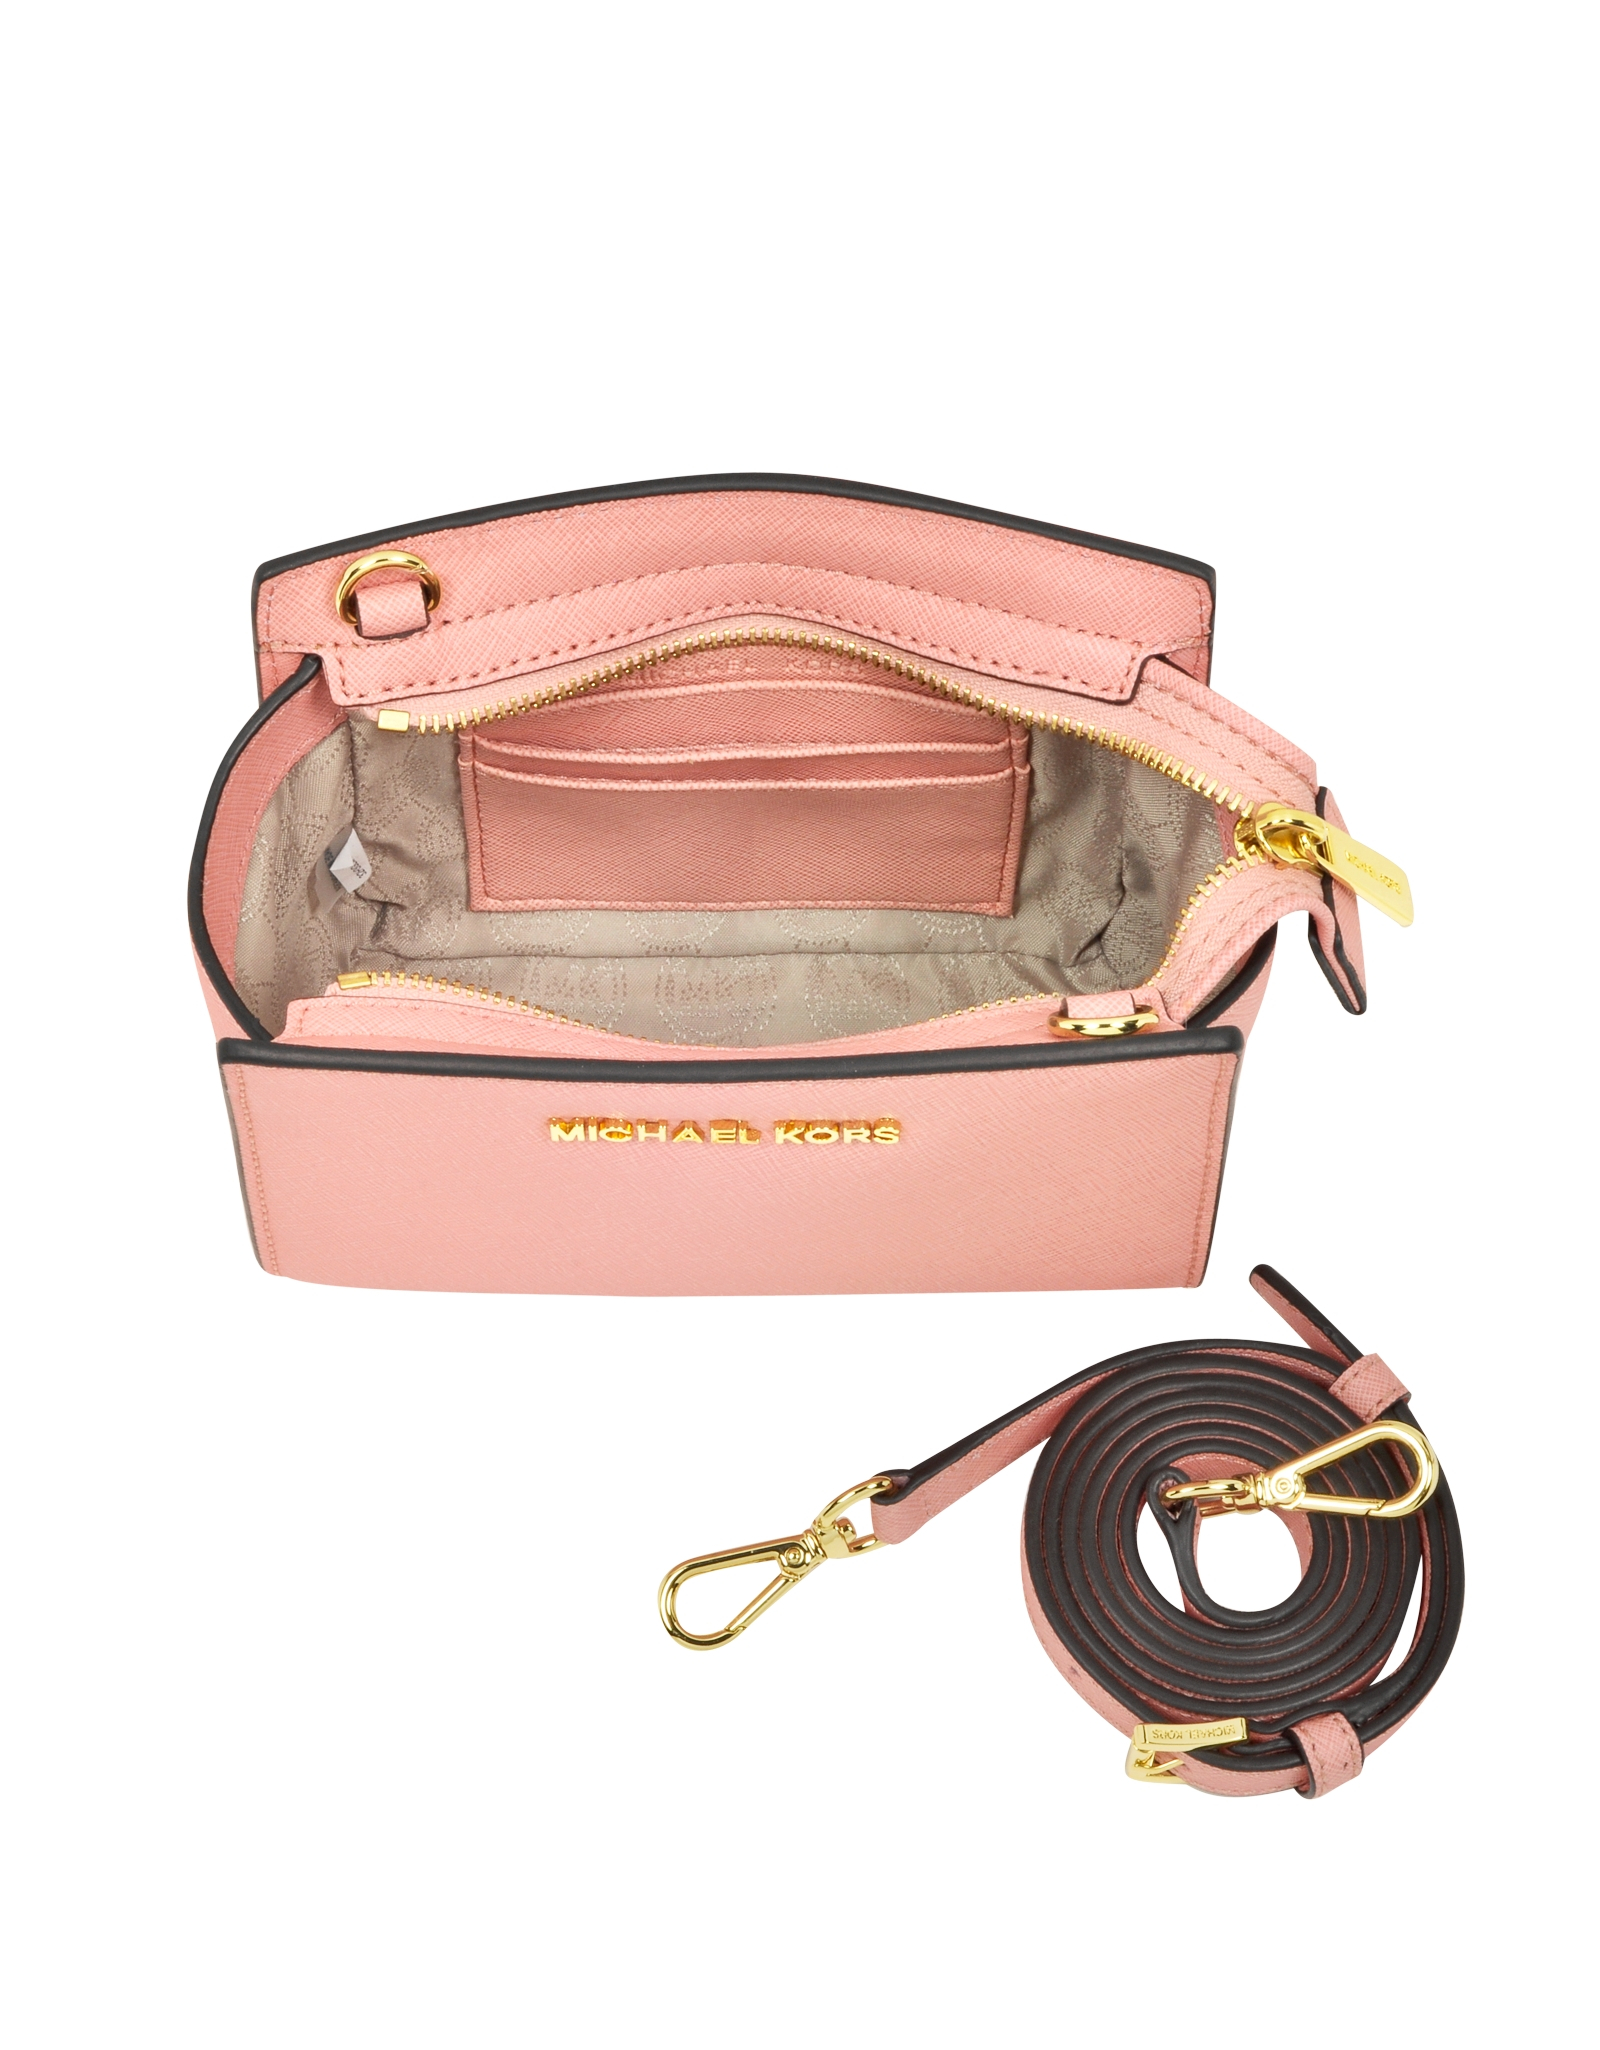 2b4dc541e71150 Michael Kors Selma Saffiano Leather Mini Messenger in Pink - Lyst